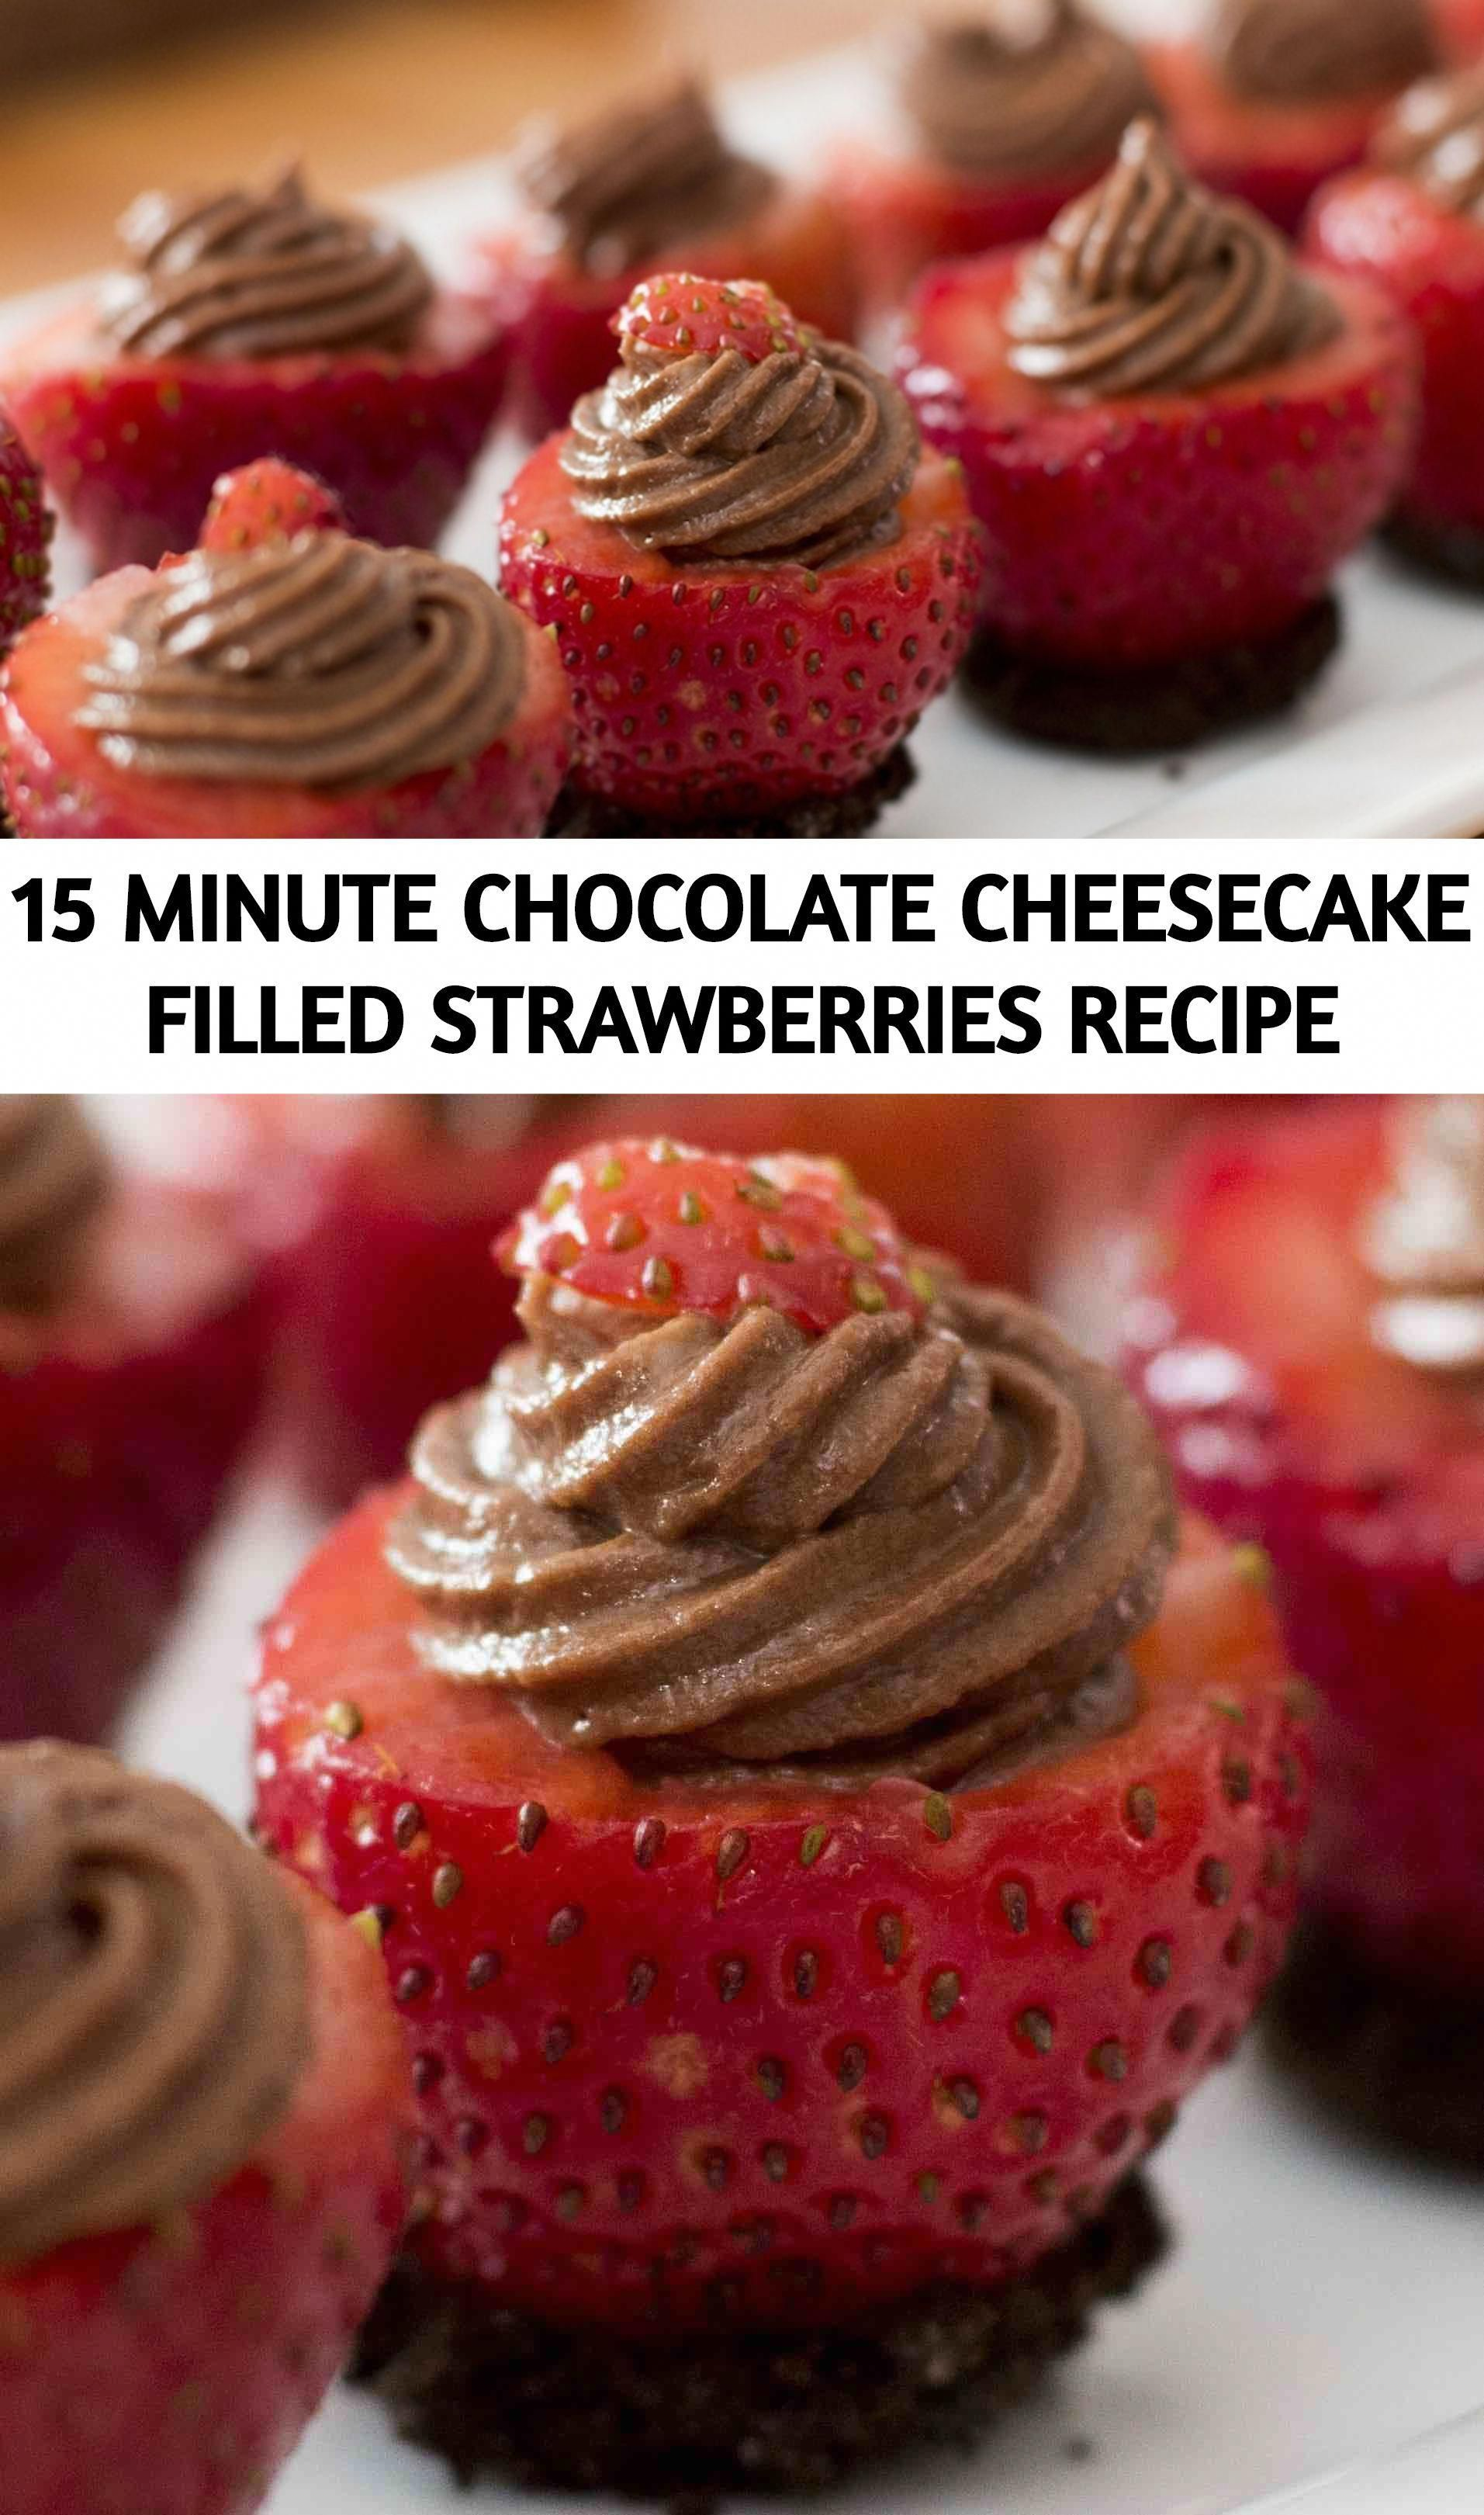 Chocolate Cheesecake Filled Strawberries- mouthwatering and creamy chocolate cheesecake stuffed in fresh strawberries. A no-bake dessert takes only 15 minutes to make! It's the perfect make-ahead dessert for a party or holiday with friends and family. #chocolatecheesecake #nobakecheesecakefilling